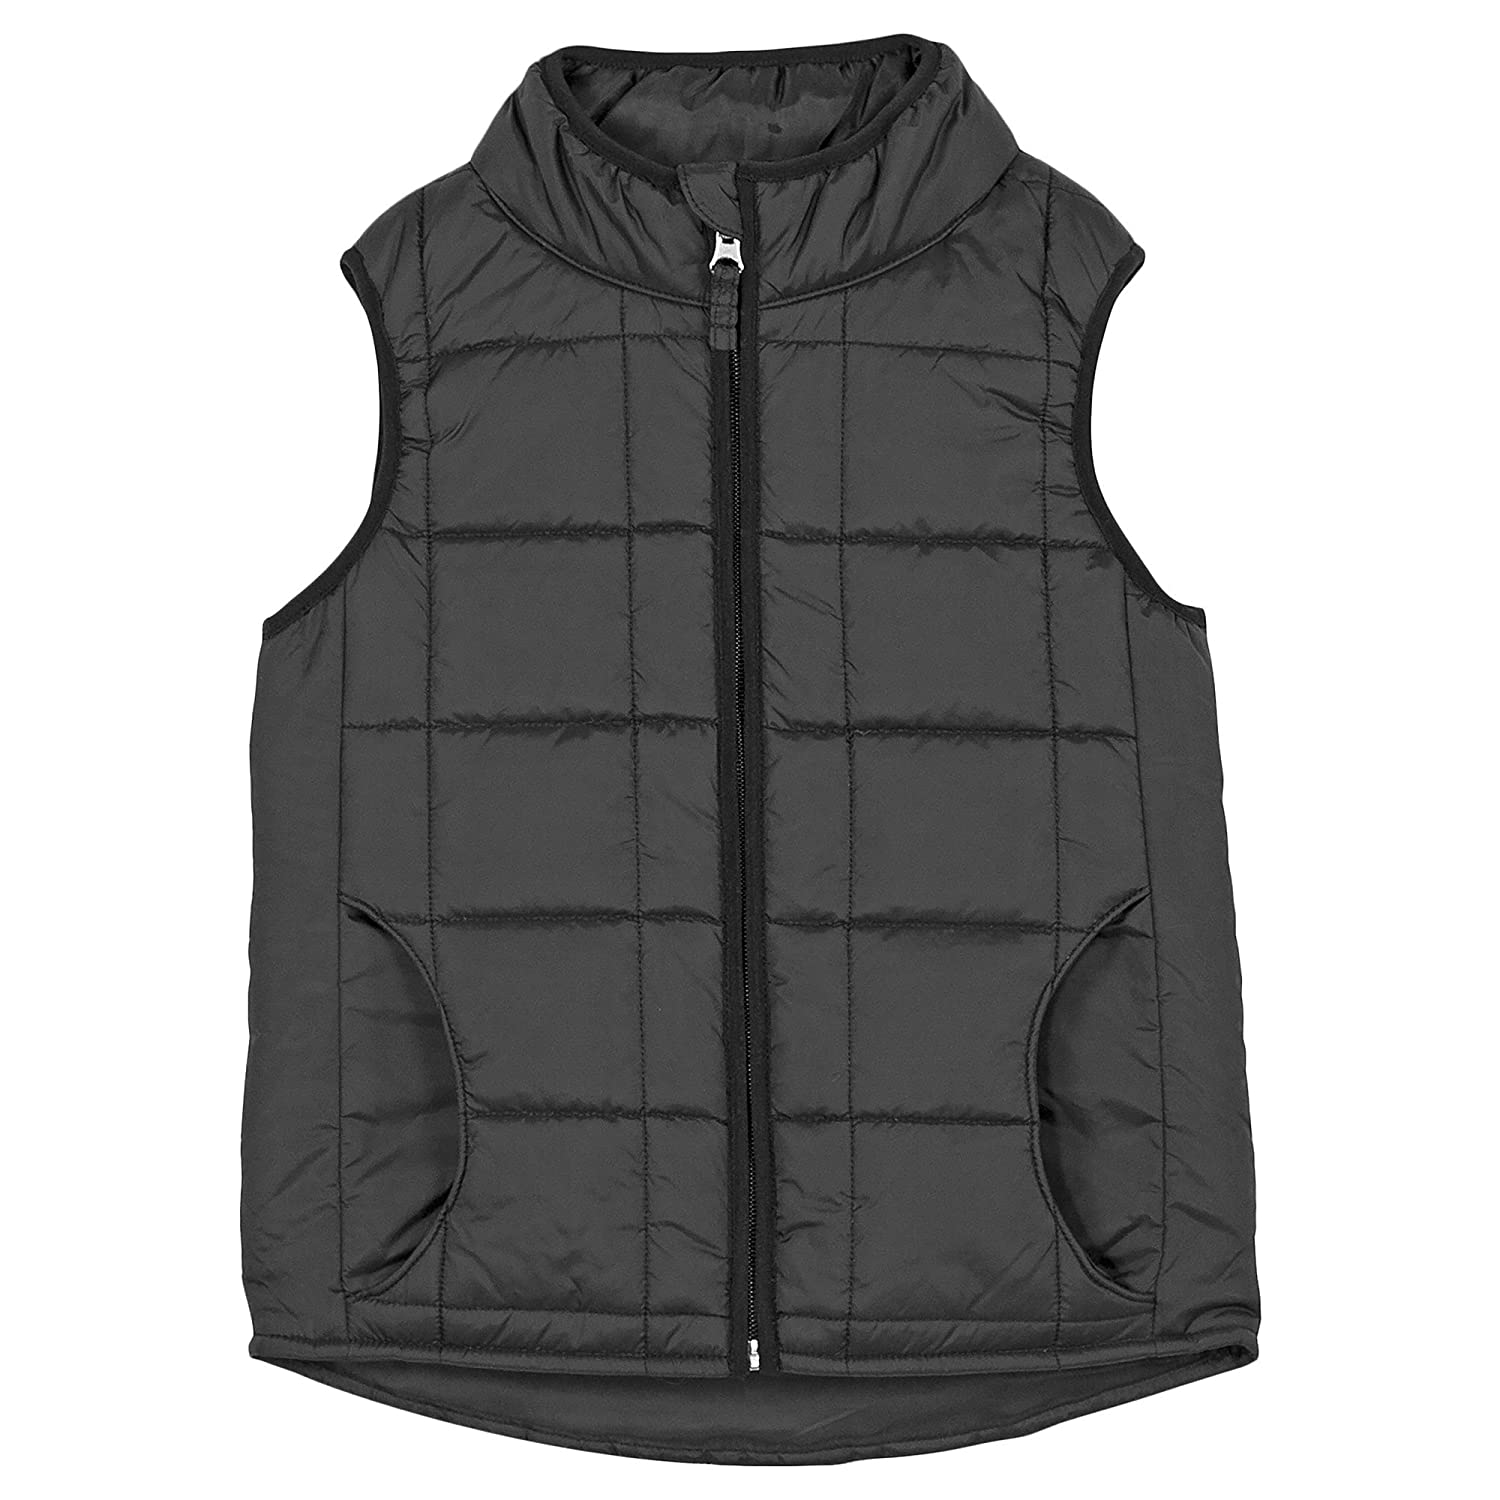 One Step Ahead Cozy Cub Little Boys High-Tech Insulated Water Resistant Vest, Ages 1-4